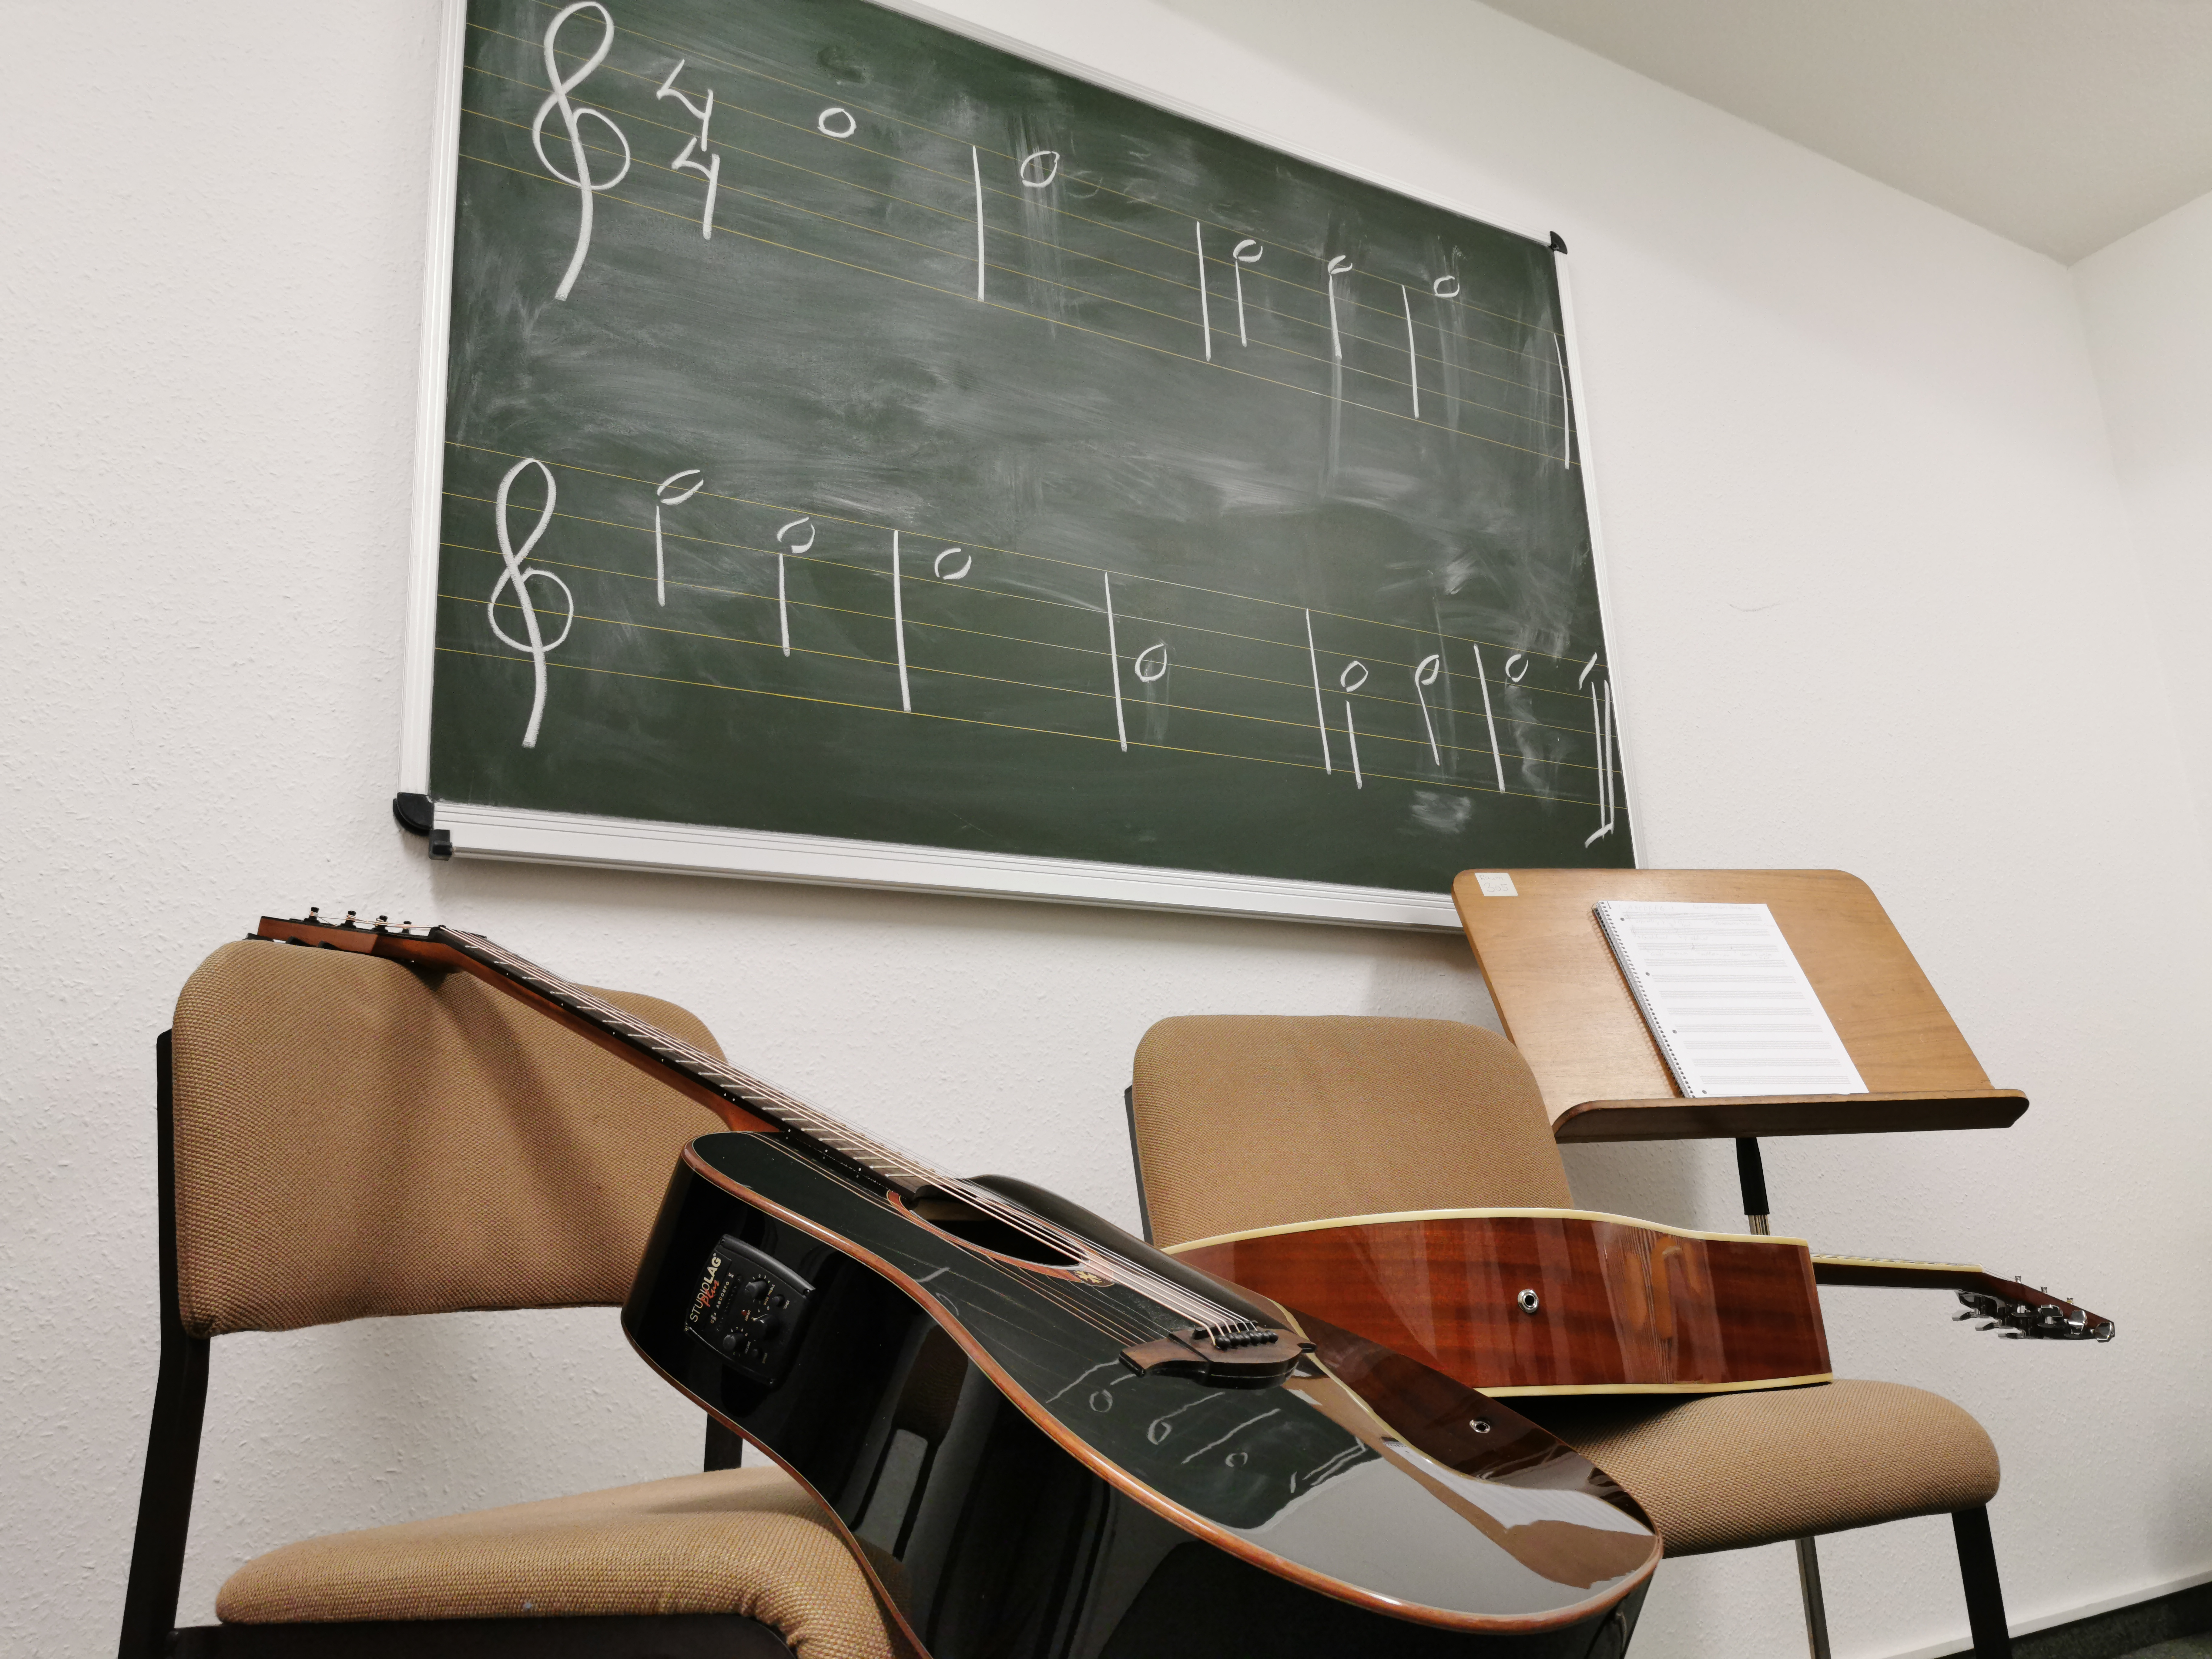 04.11.2019 – Guitar classes have started !